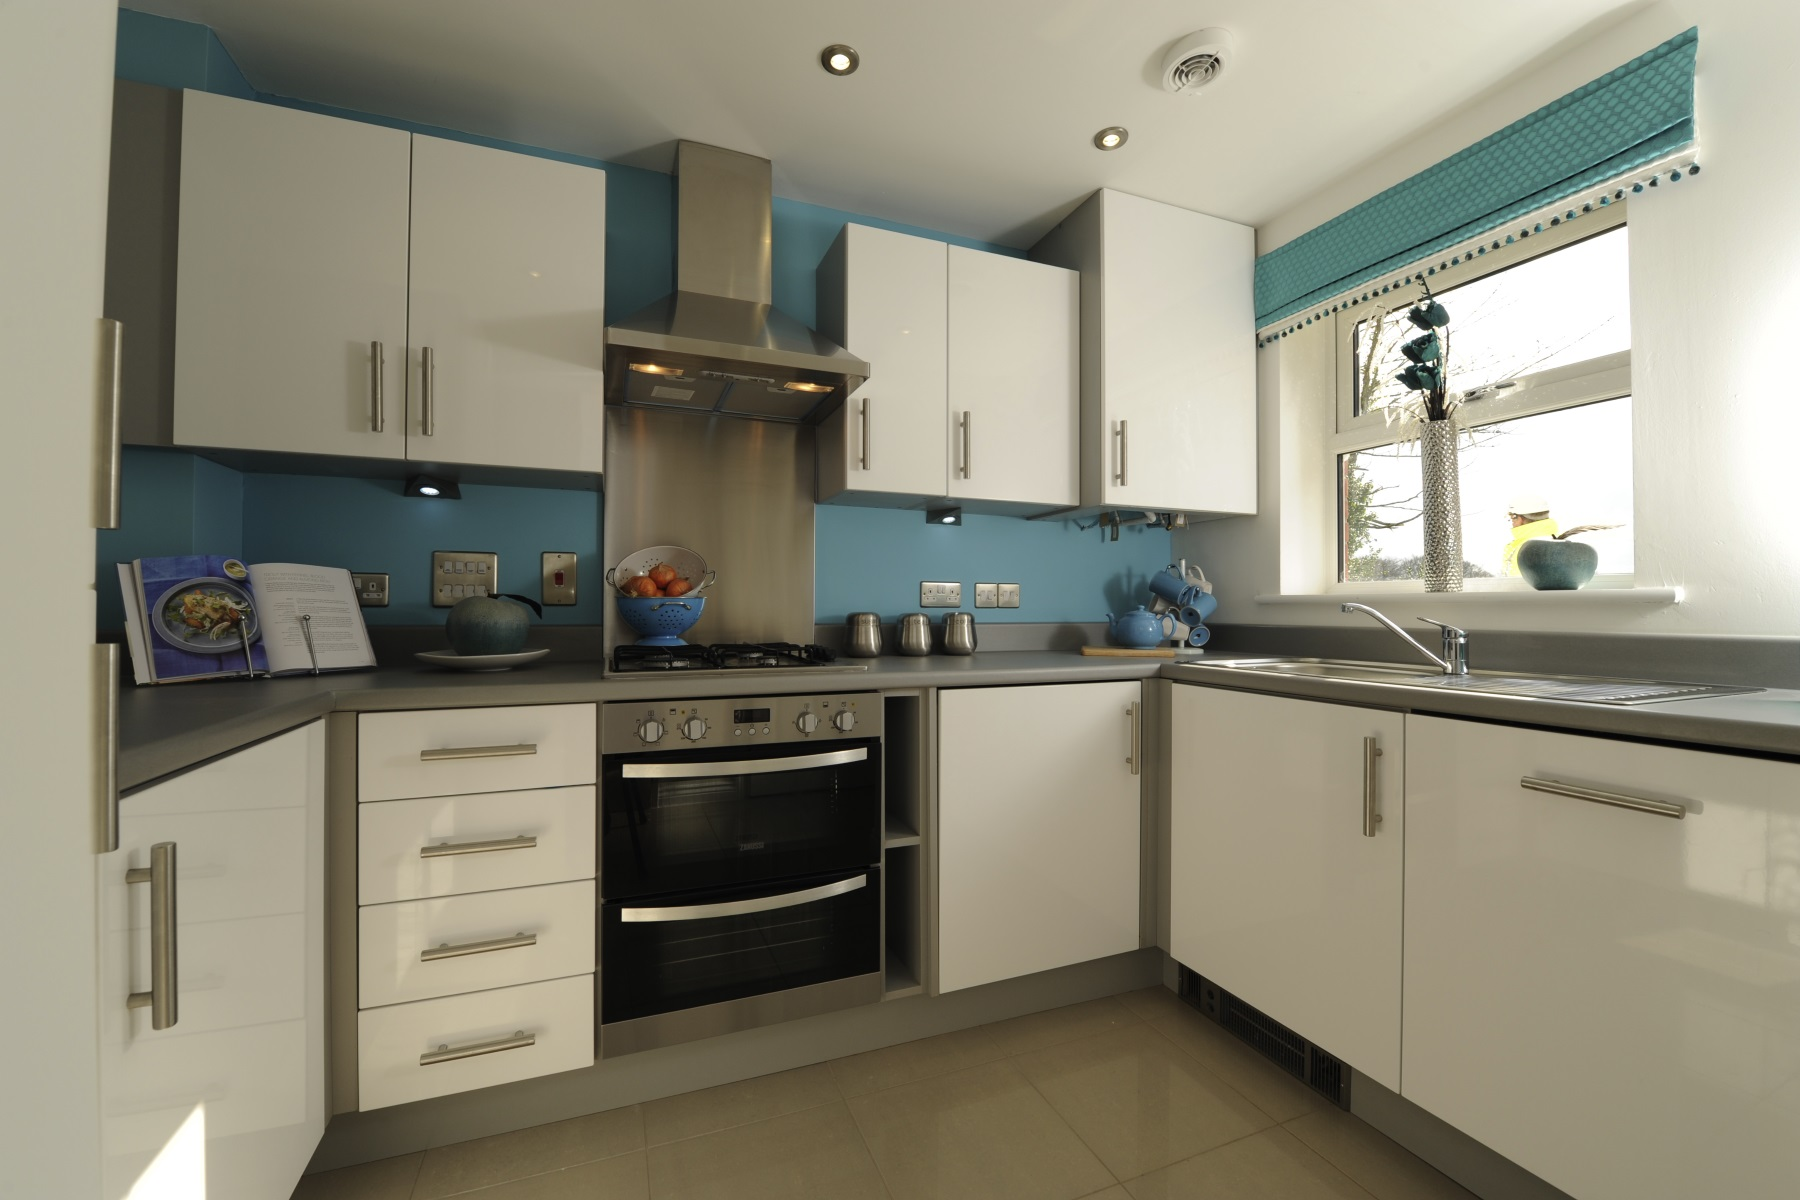 TW Exeter - Sherford - The Chestnut example kitchen